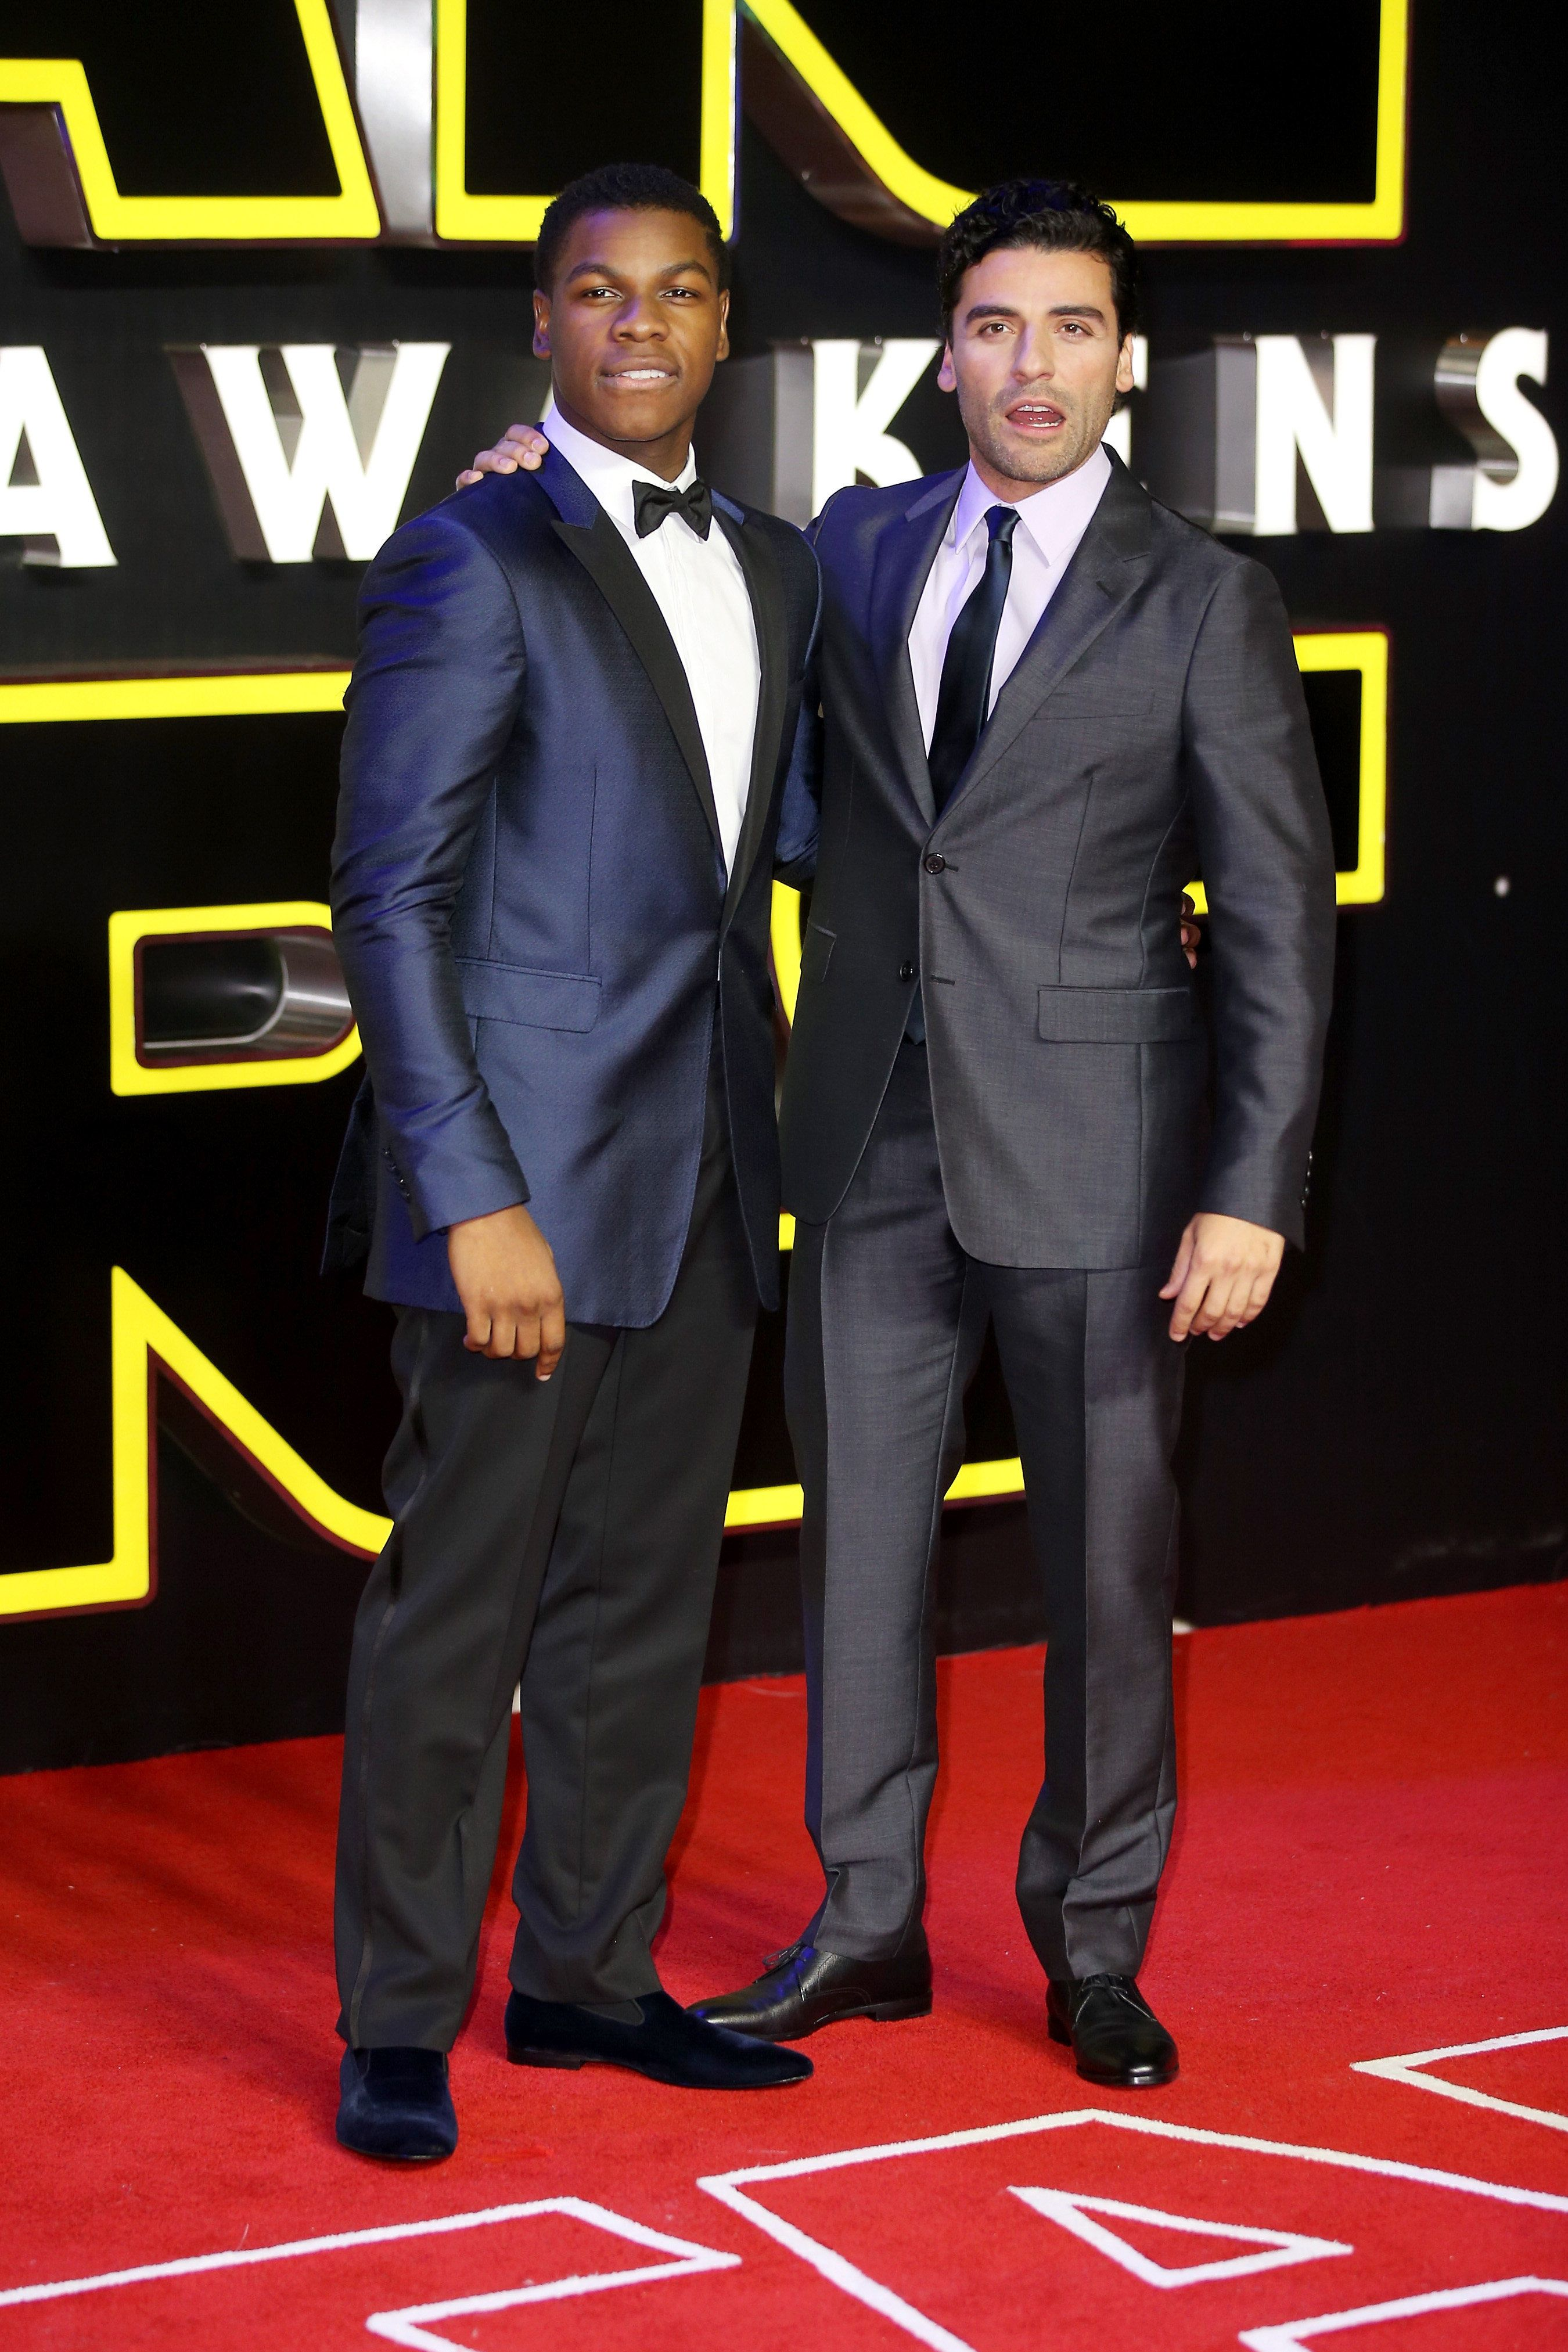 LONDON, ENGLAND - DECEMBER 16: (L-R) Actors John Boyega and Oscar Isaac attend the European Premiere of 'Star Wars: The Force Awakens' at Leicester Square on December 16, 2015 in London, England.  (Photo by Mike Marsland/WireImage)